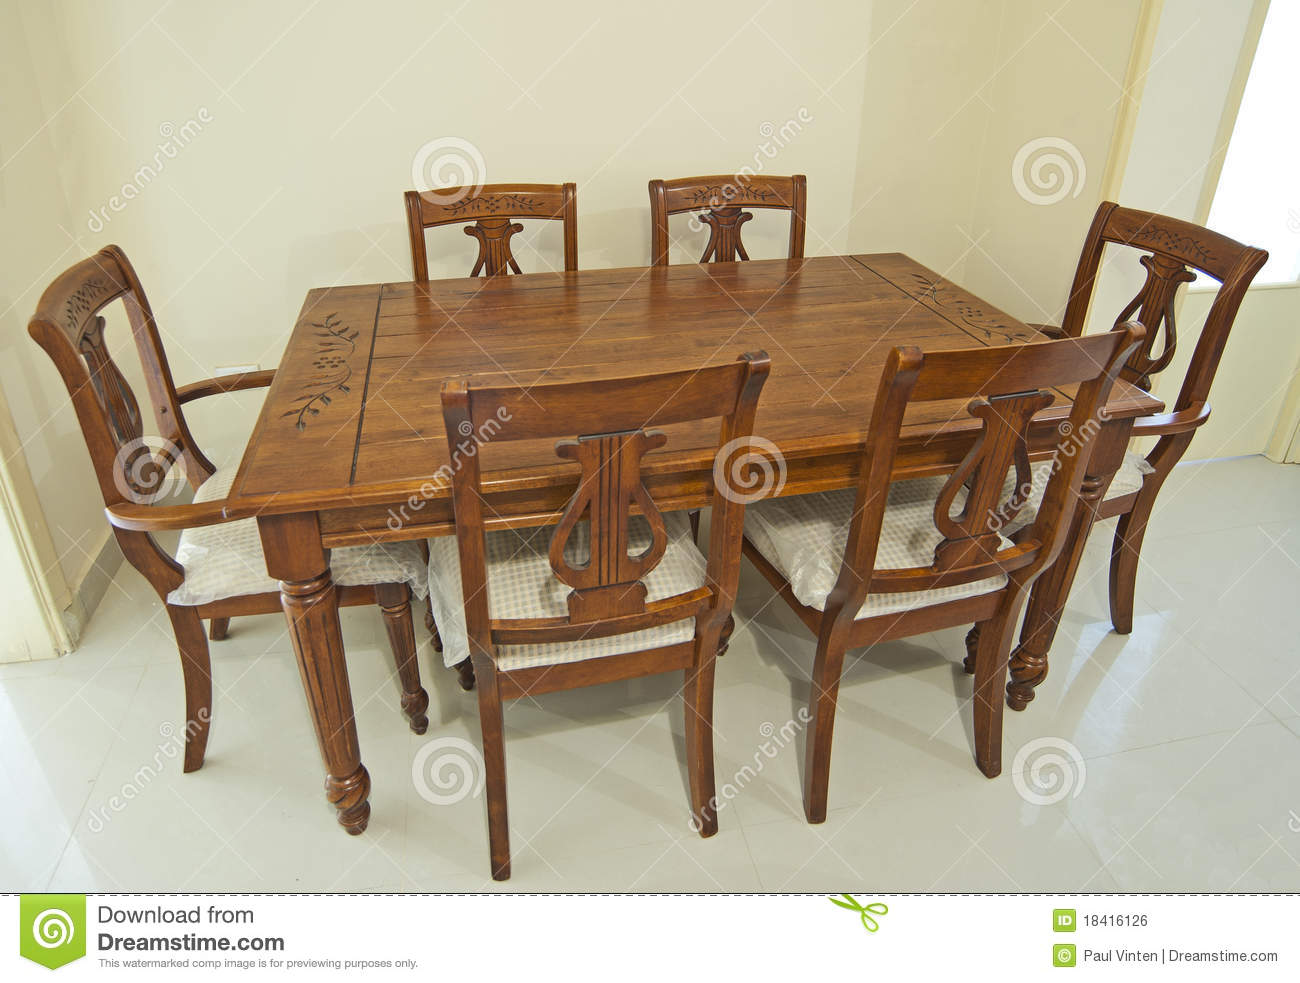 Wooden dining table and chairs royalty free stock image image 18416126 - Free dining tables ...